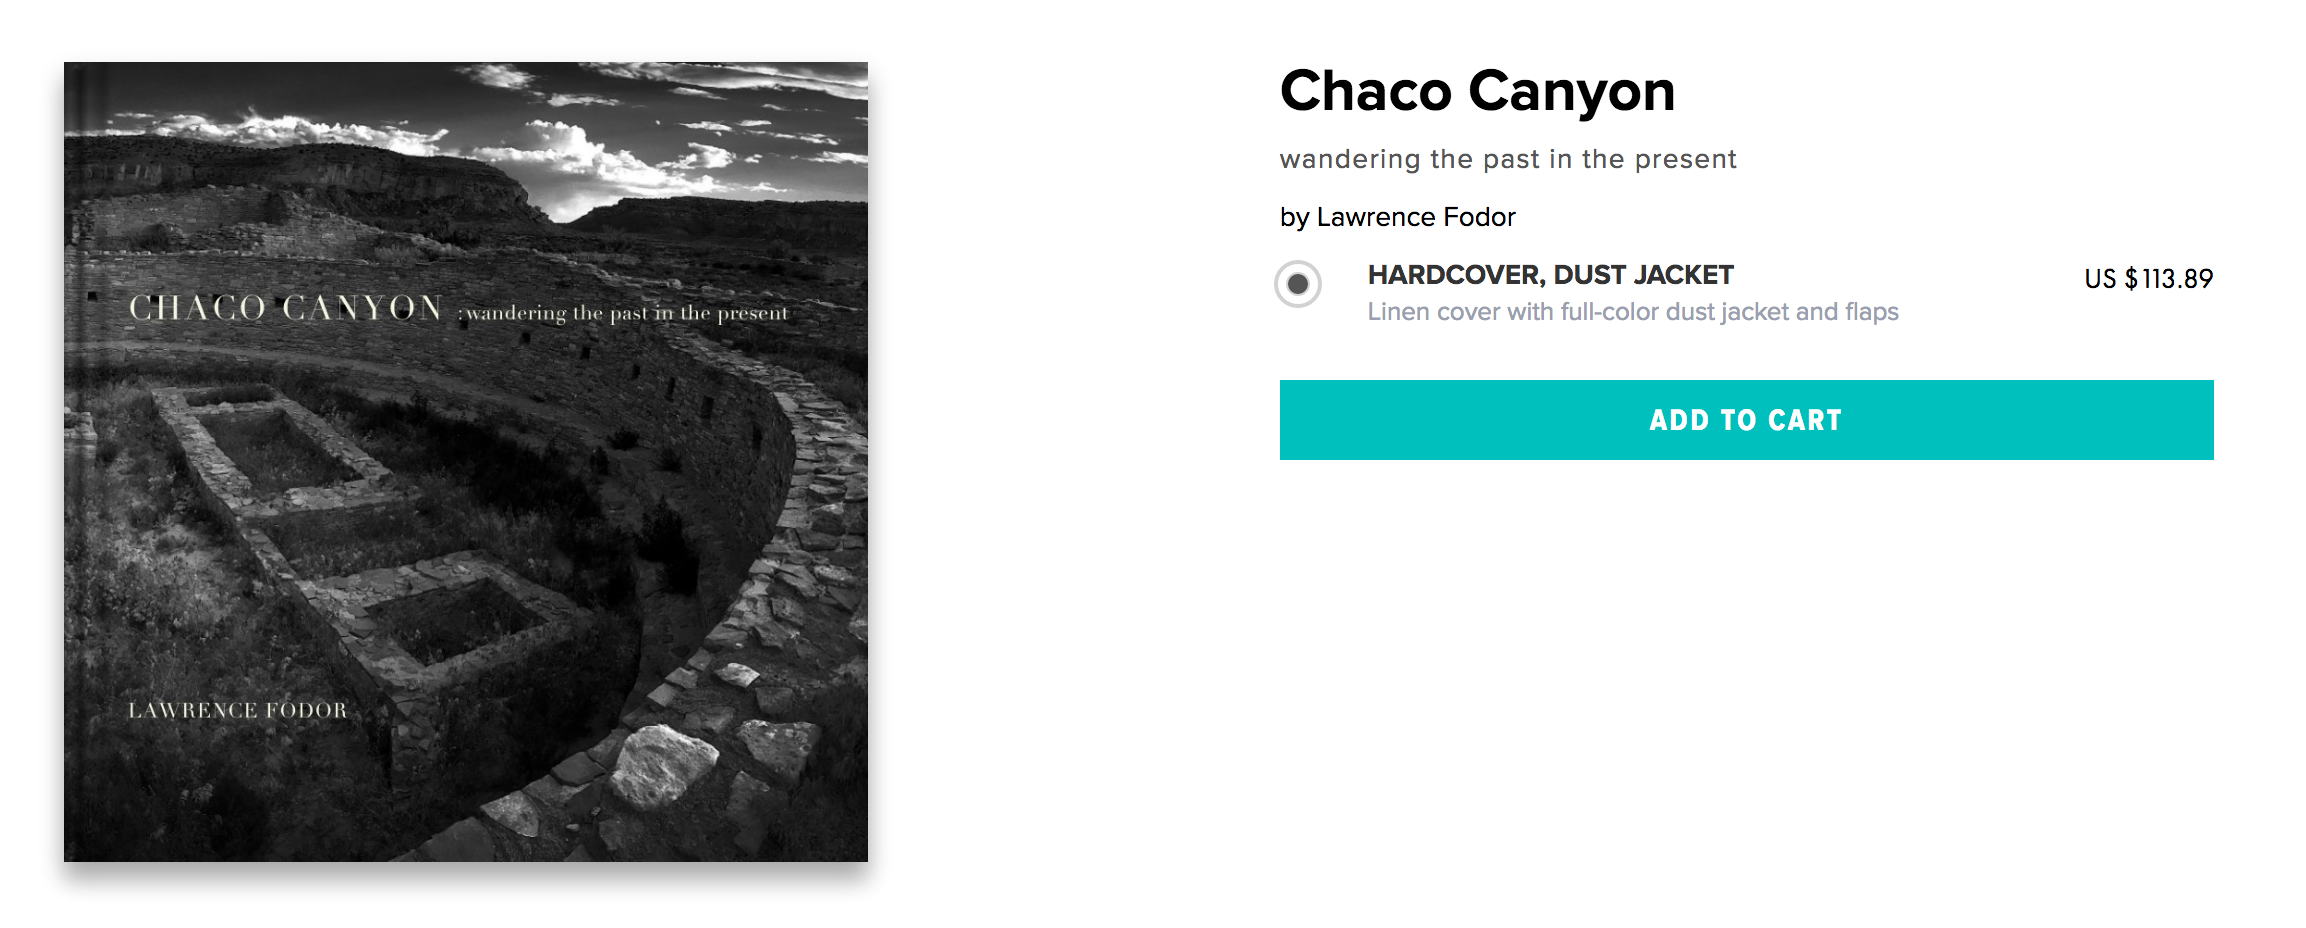 """Chaco Canyon: wandering the past in the present - photographs and an essay by Lawrence Fodor.  Lawrence Fodor recounts his camping, hiking and creative journey to Chaco Culture National Historical Park in New Mexico with five other artists in May 2015. A descriptive and illustrated narrative that includes entries drawn from his journal, photographs he took and watercolors he painted on location in Chaco Canyon and the surrounding mesas. There is magic at work in Chaco Canyon. It is enigmatic, powerful and sustained.  """"With every visit I make to Chaco Canyon a unique exchange occurs while I am there – a discourse – with the land, the collective memories unearthed in the dust and dirt as I wander, the antiquity, the moment, the monument – and the people that accompany me. This trip was no exception."""""""